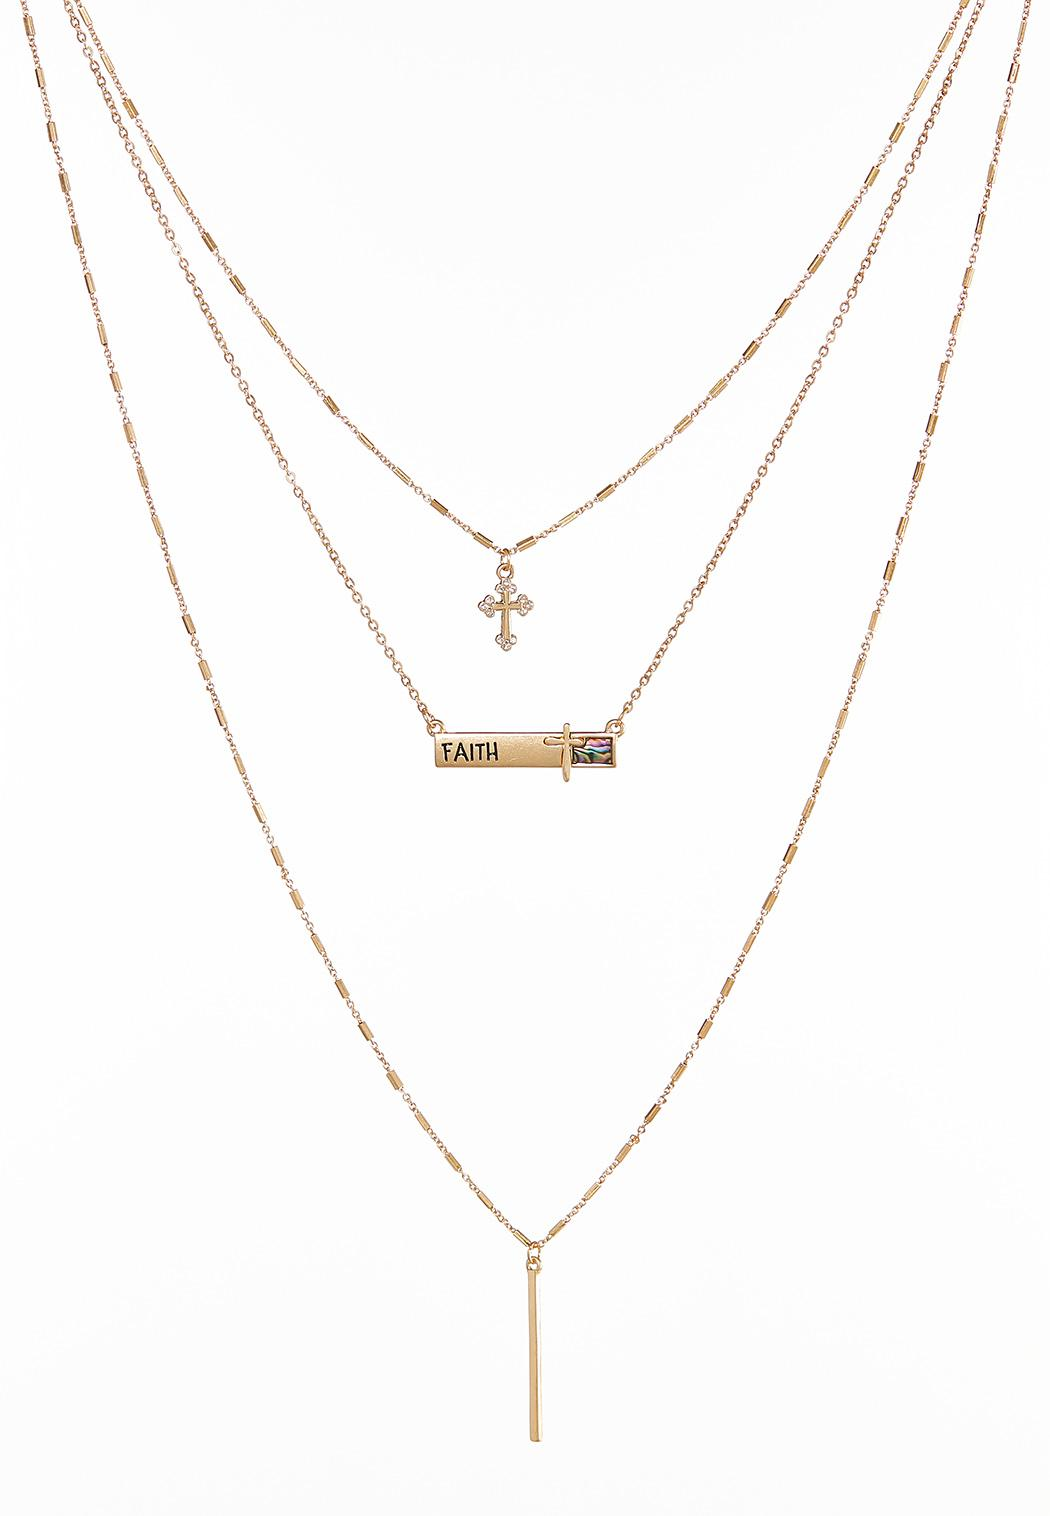 Delicate Layered Faith Necklace